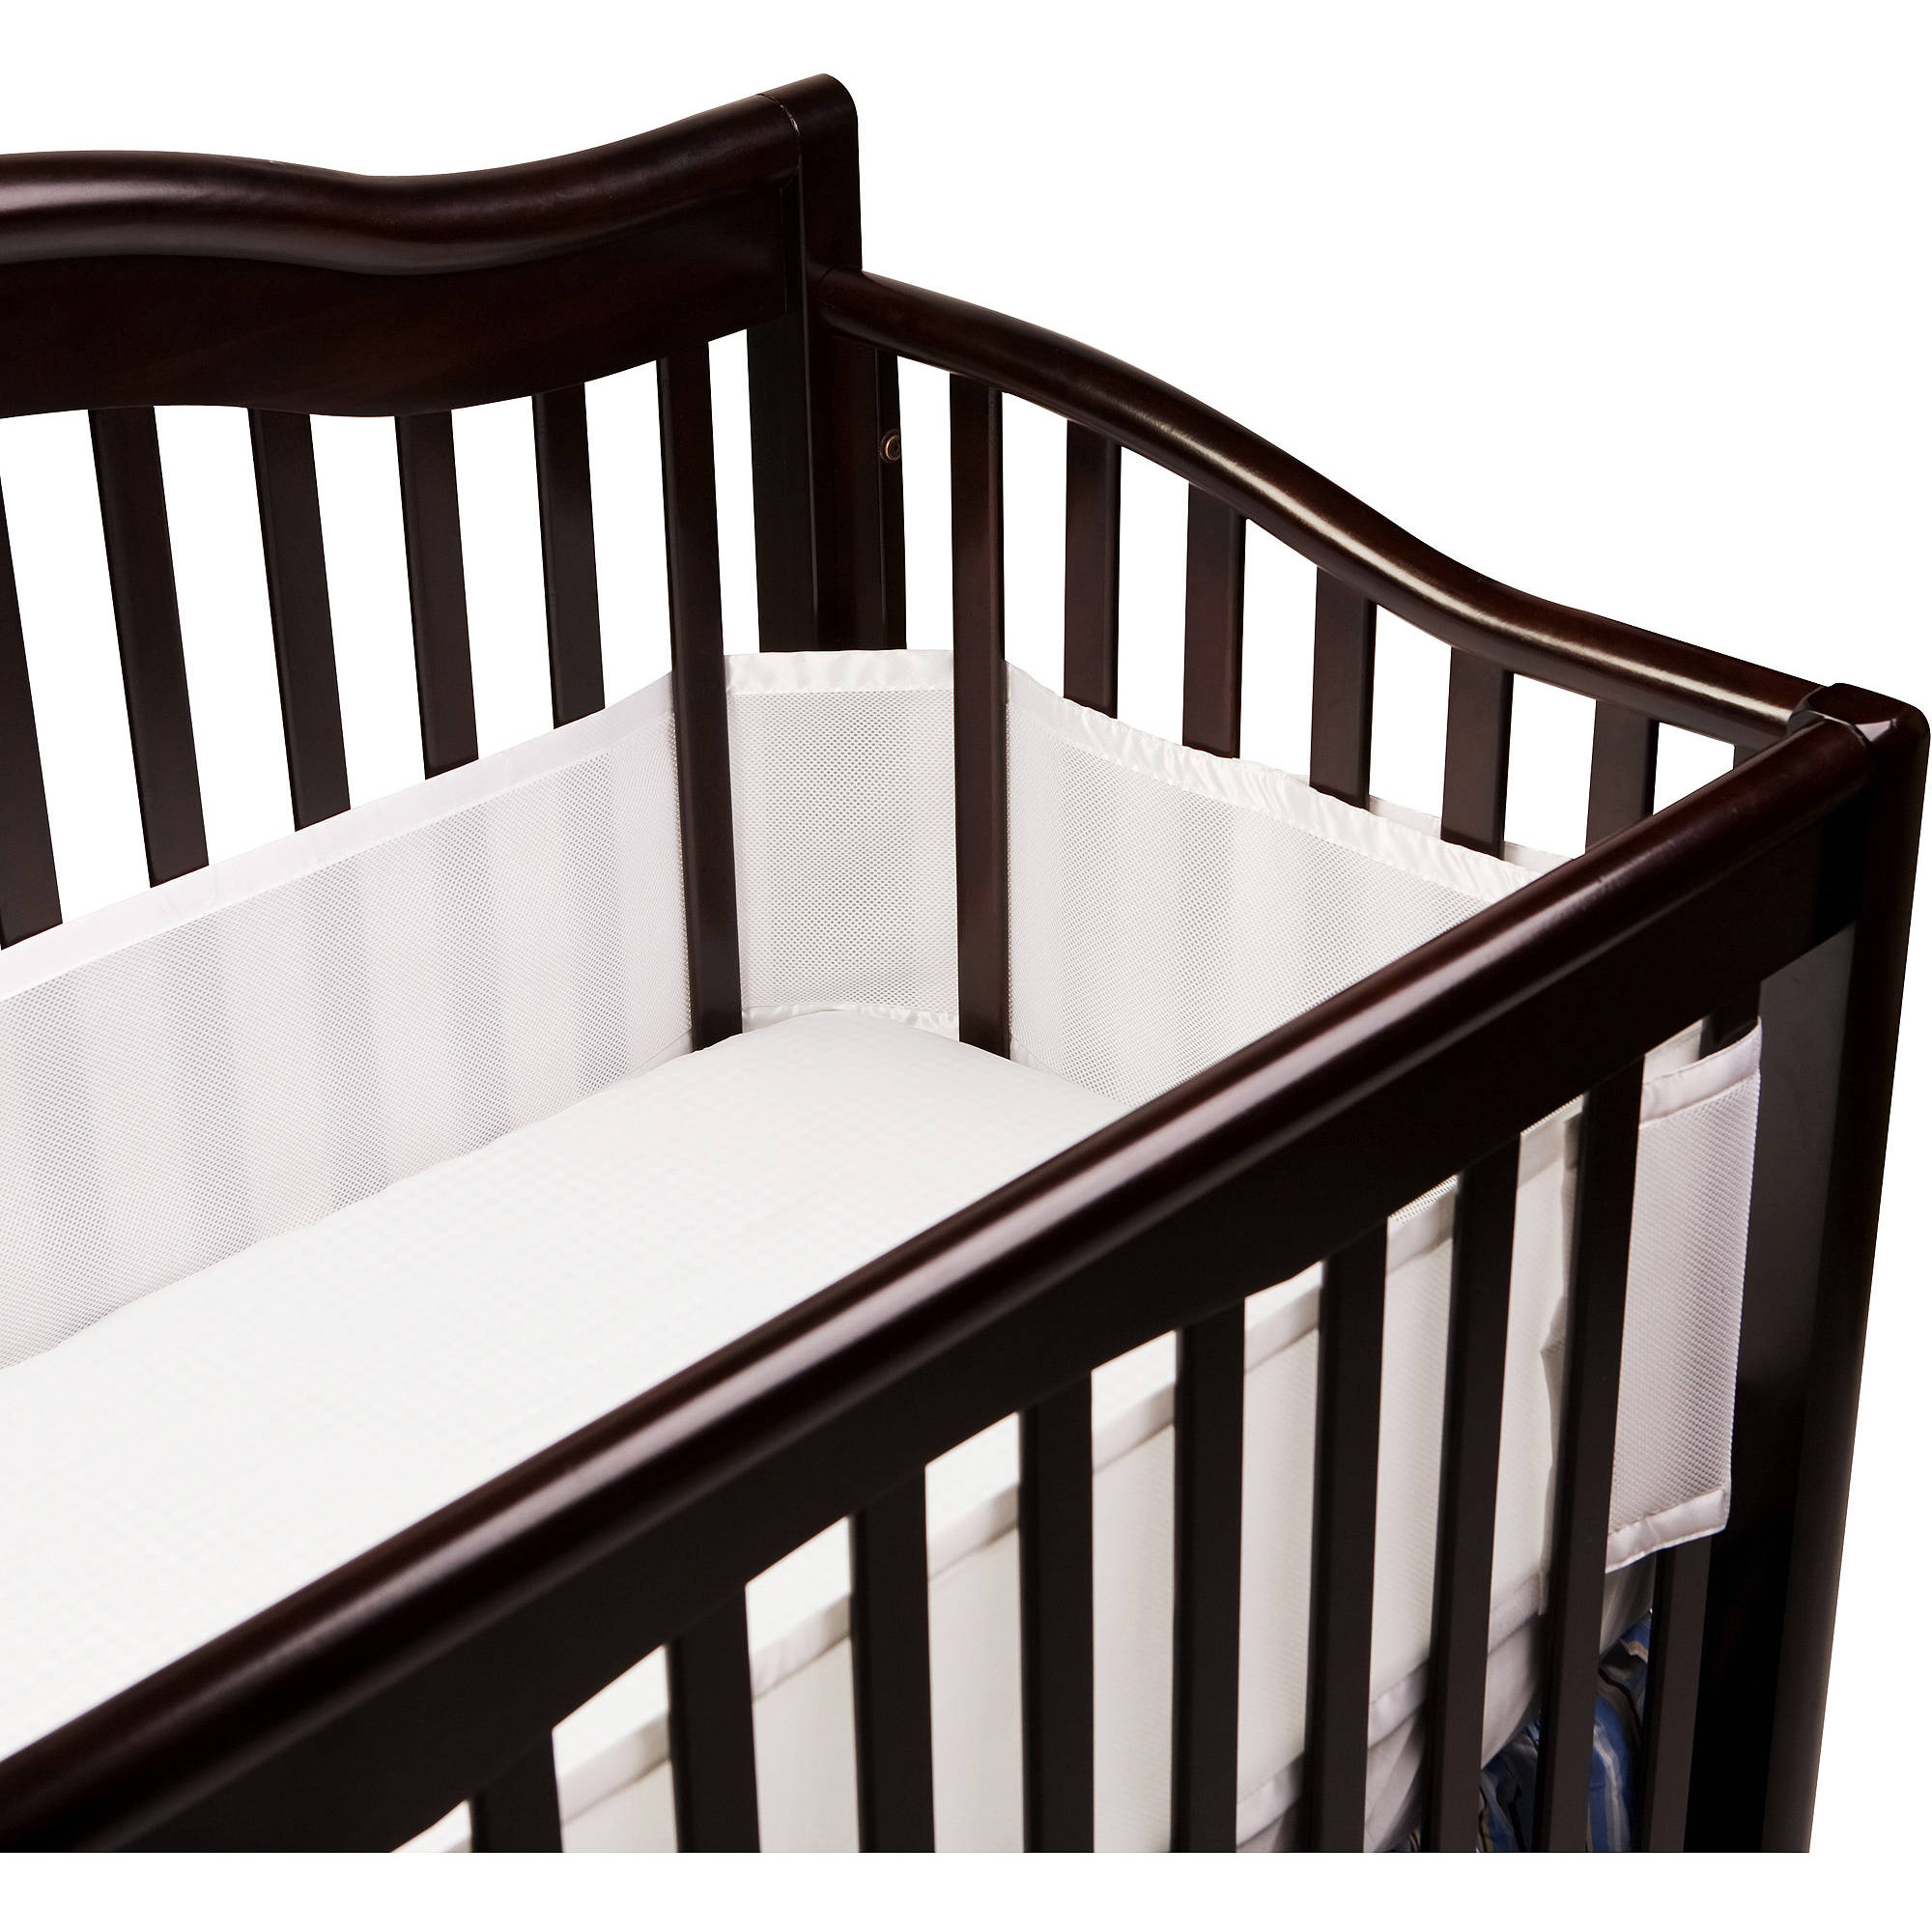 Used crib for sale edmonton - Breathablebaby Breathable Crib Liner Fits All Cribs Choose Your Color Walmart Com